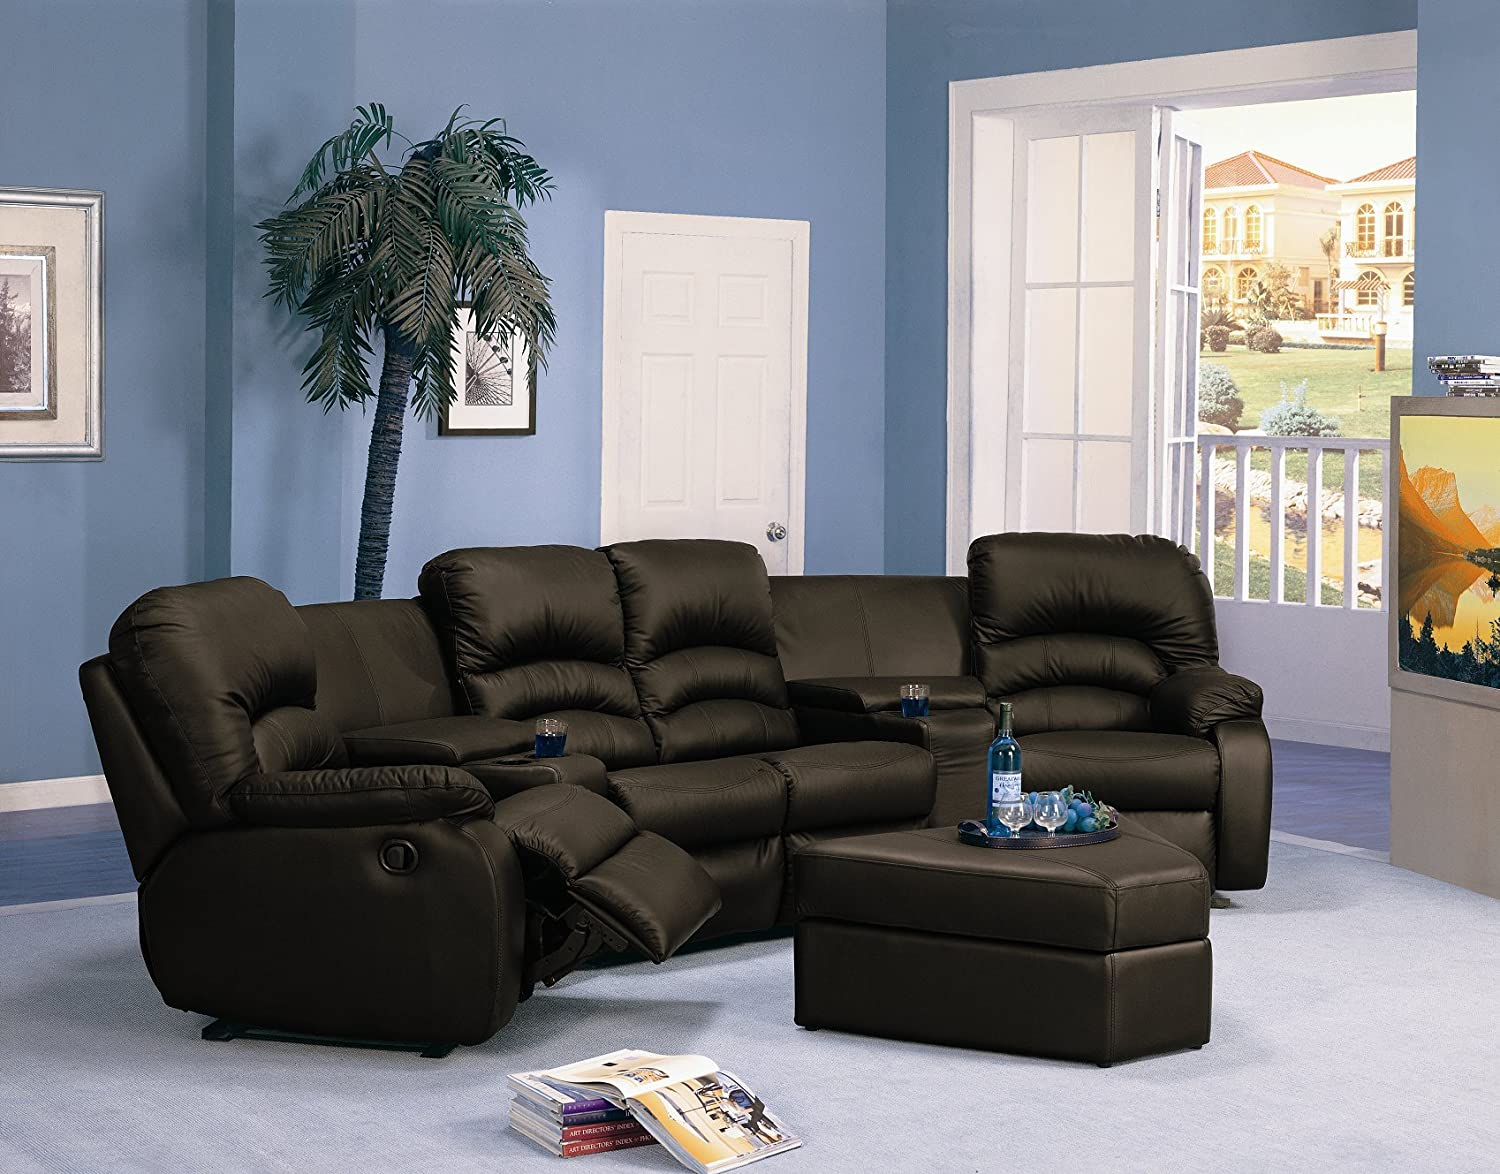 sale chairs design recliner style for rare cinema from seats home theater leather movie red expert loveseat furniture